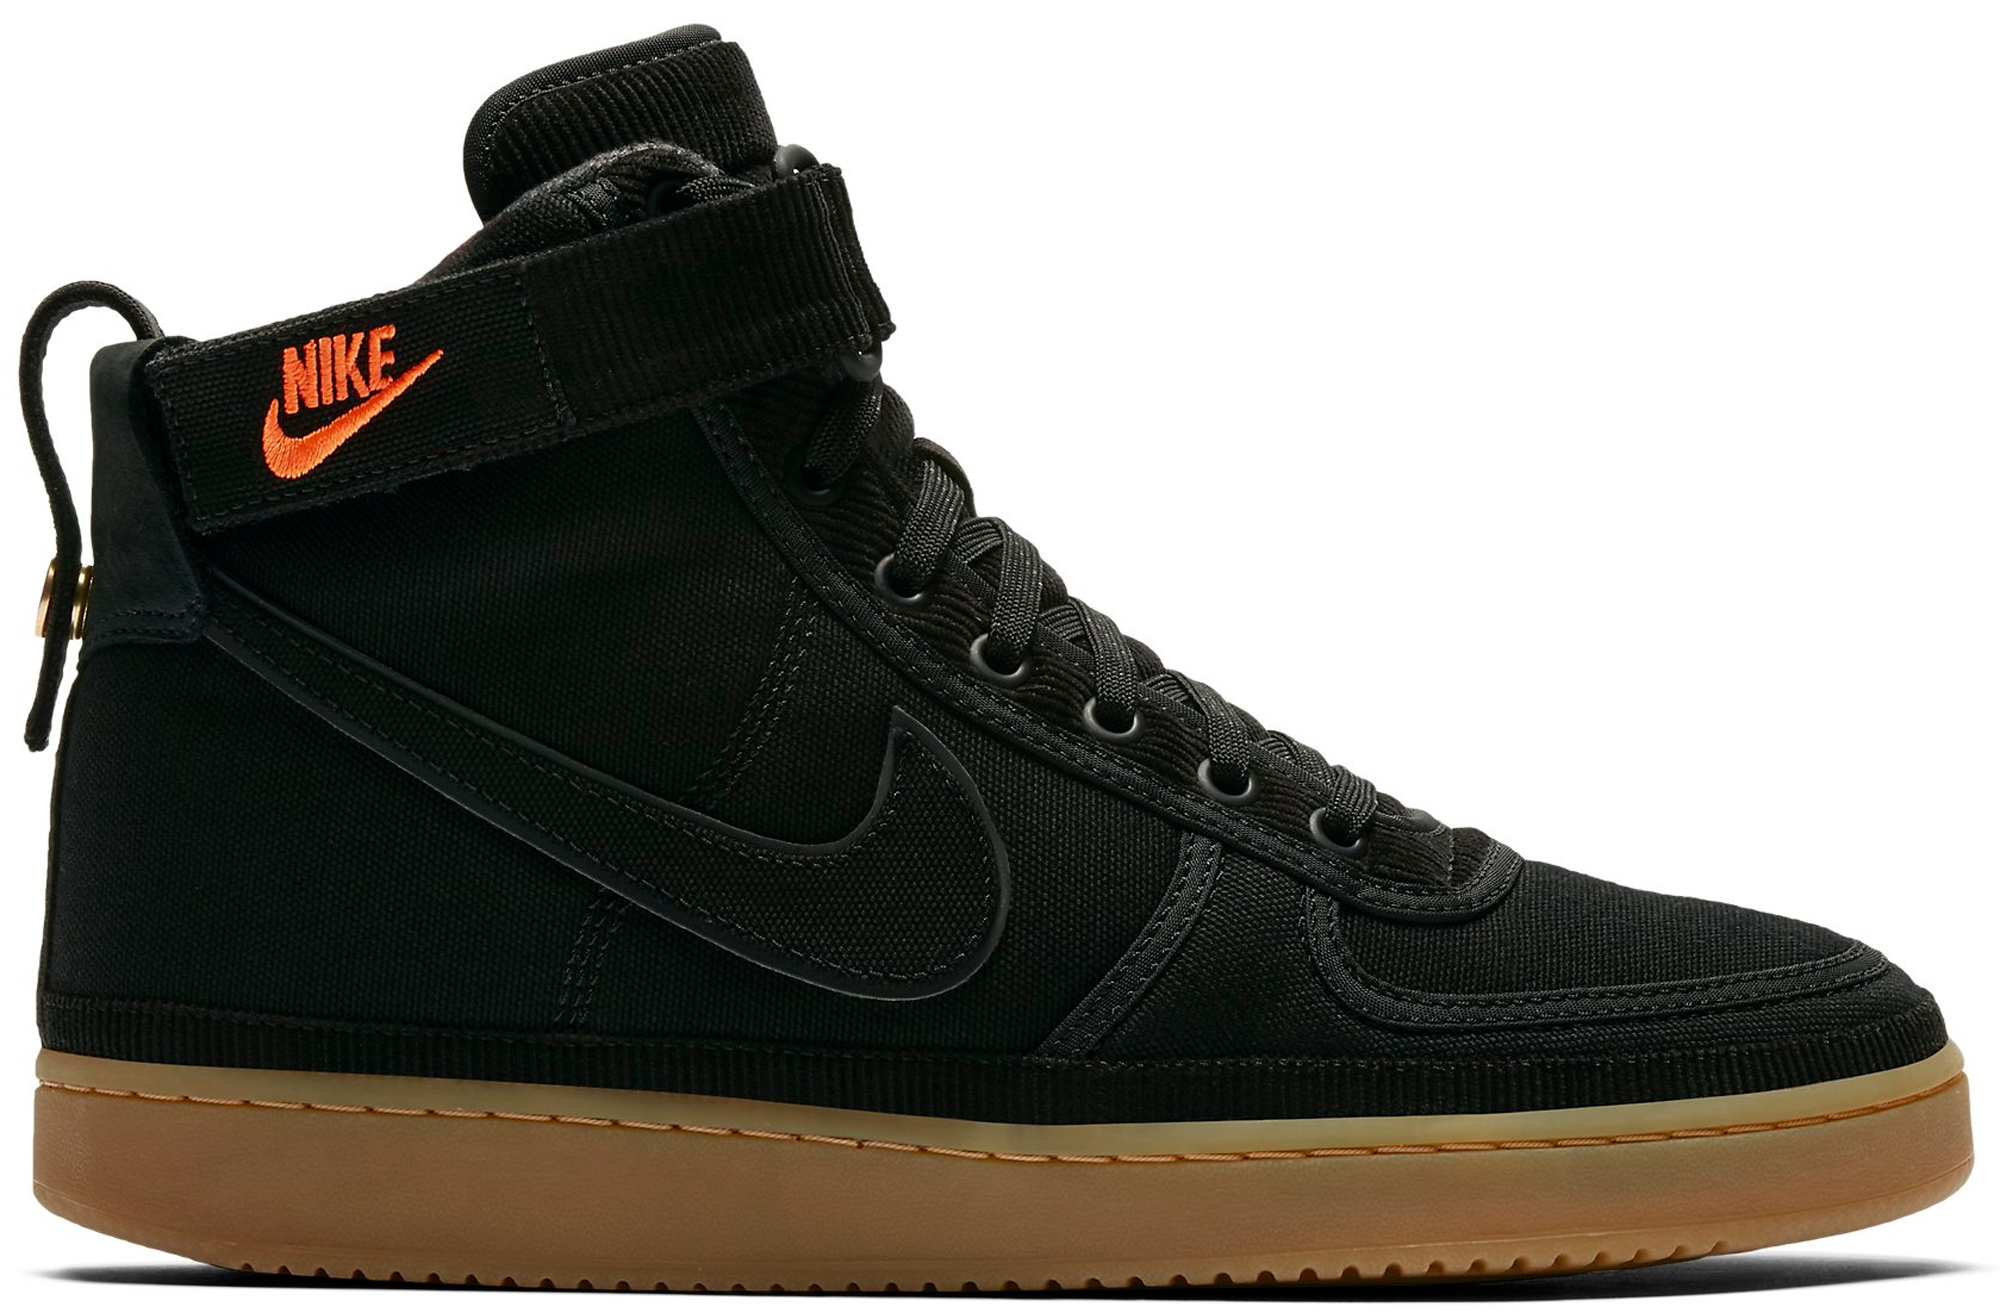 finest selection d409b b69e2 ... usa nike vandal high supreme carhartt wip black 9c226 7d1f5